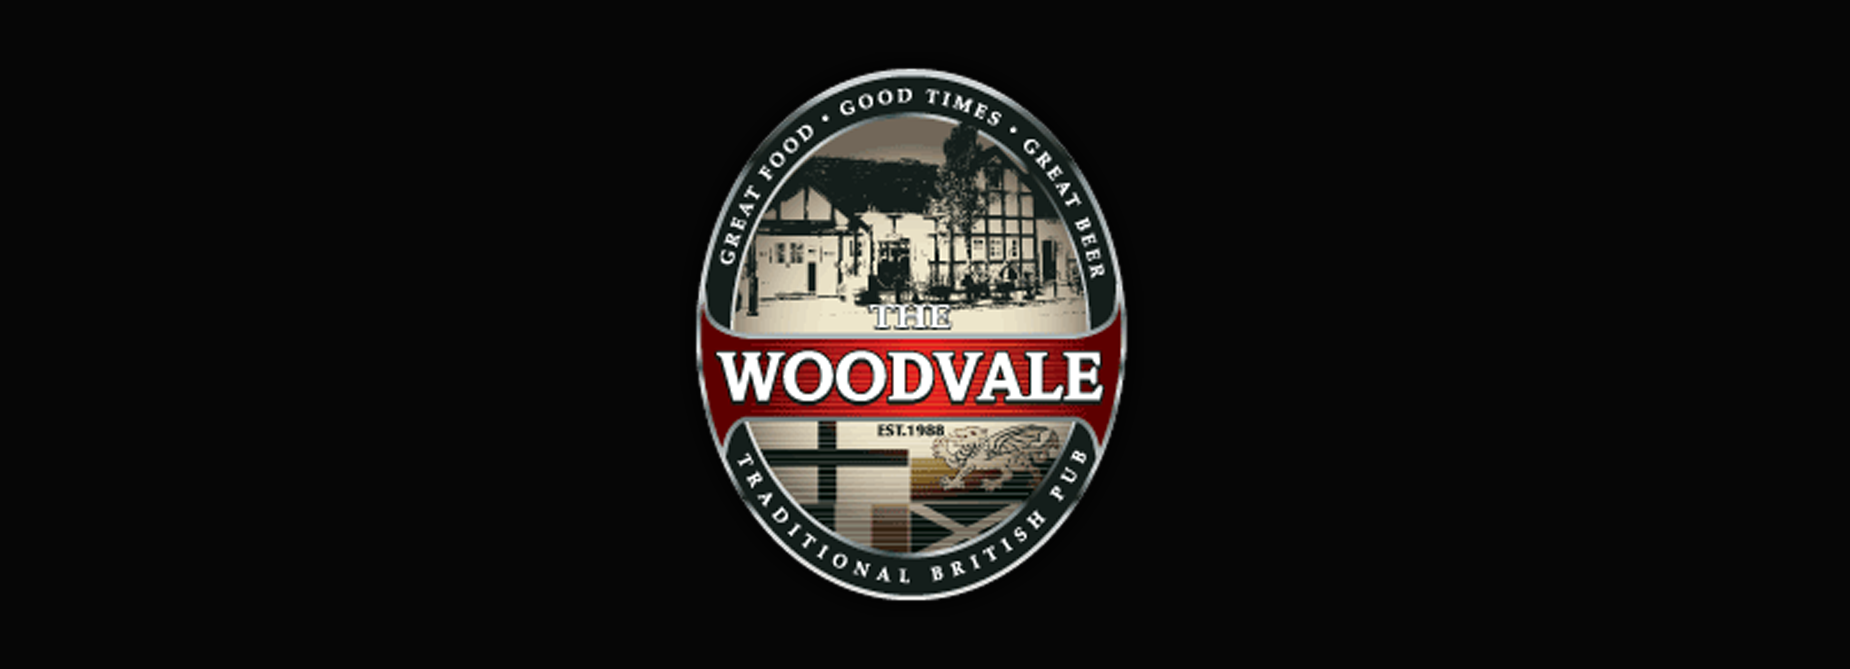 The Woodvale Tavern logo